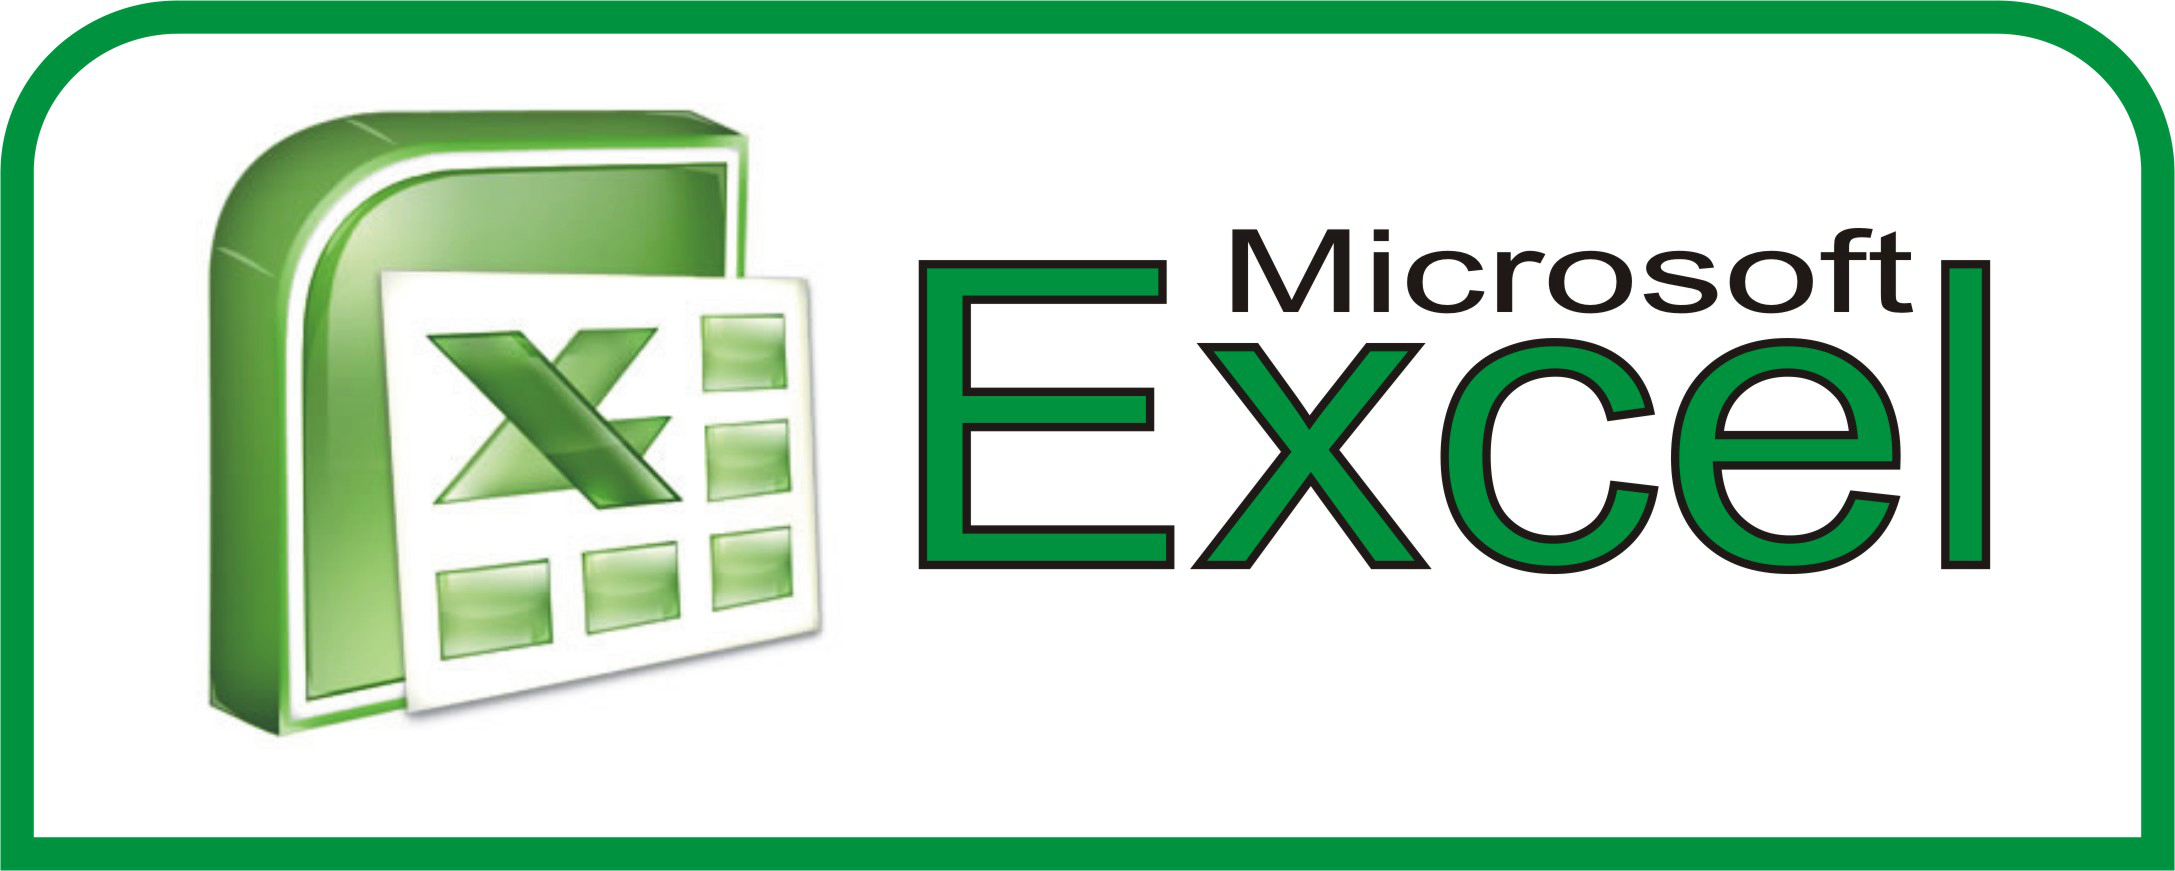 Ediblewildsus  Personable  Excel Shortcuts You Probably Didnt Know About  Techdissected With Luxury Accounting Excel Template Besides Datedif Excel  Furthermore Excel Vba Activecell With Comely Excel Table Reference Also How Many Rows In Excel  In Addition Percent Difference Formula Excel And Combine Excel Workbooks As Well As Add A Trendline In Excel Additionally Template Excel From Techdissectedcom With Ediblewildsus  Luxury  Excel Shortcuts You Probably Didnt Know About  Techdissected With Comely Accounting Excel Template Besides Datedif Excel  Furthermore Excel Vba Activecell And Personable Excel Table Reference Also How Many Rows In Excel  In Addition Percent Difference Formula Excel From Techdissectedcom